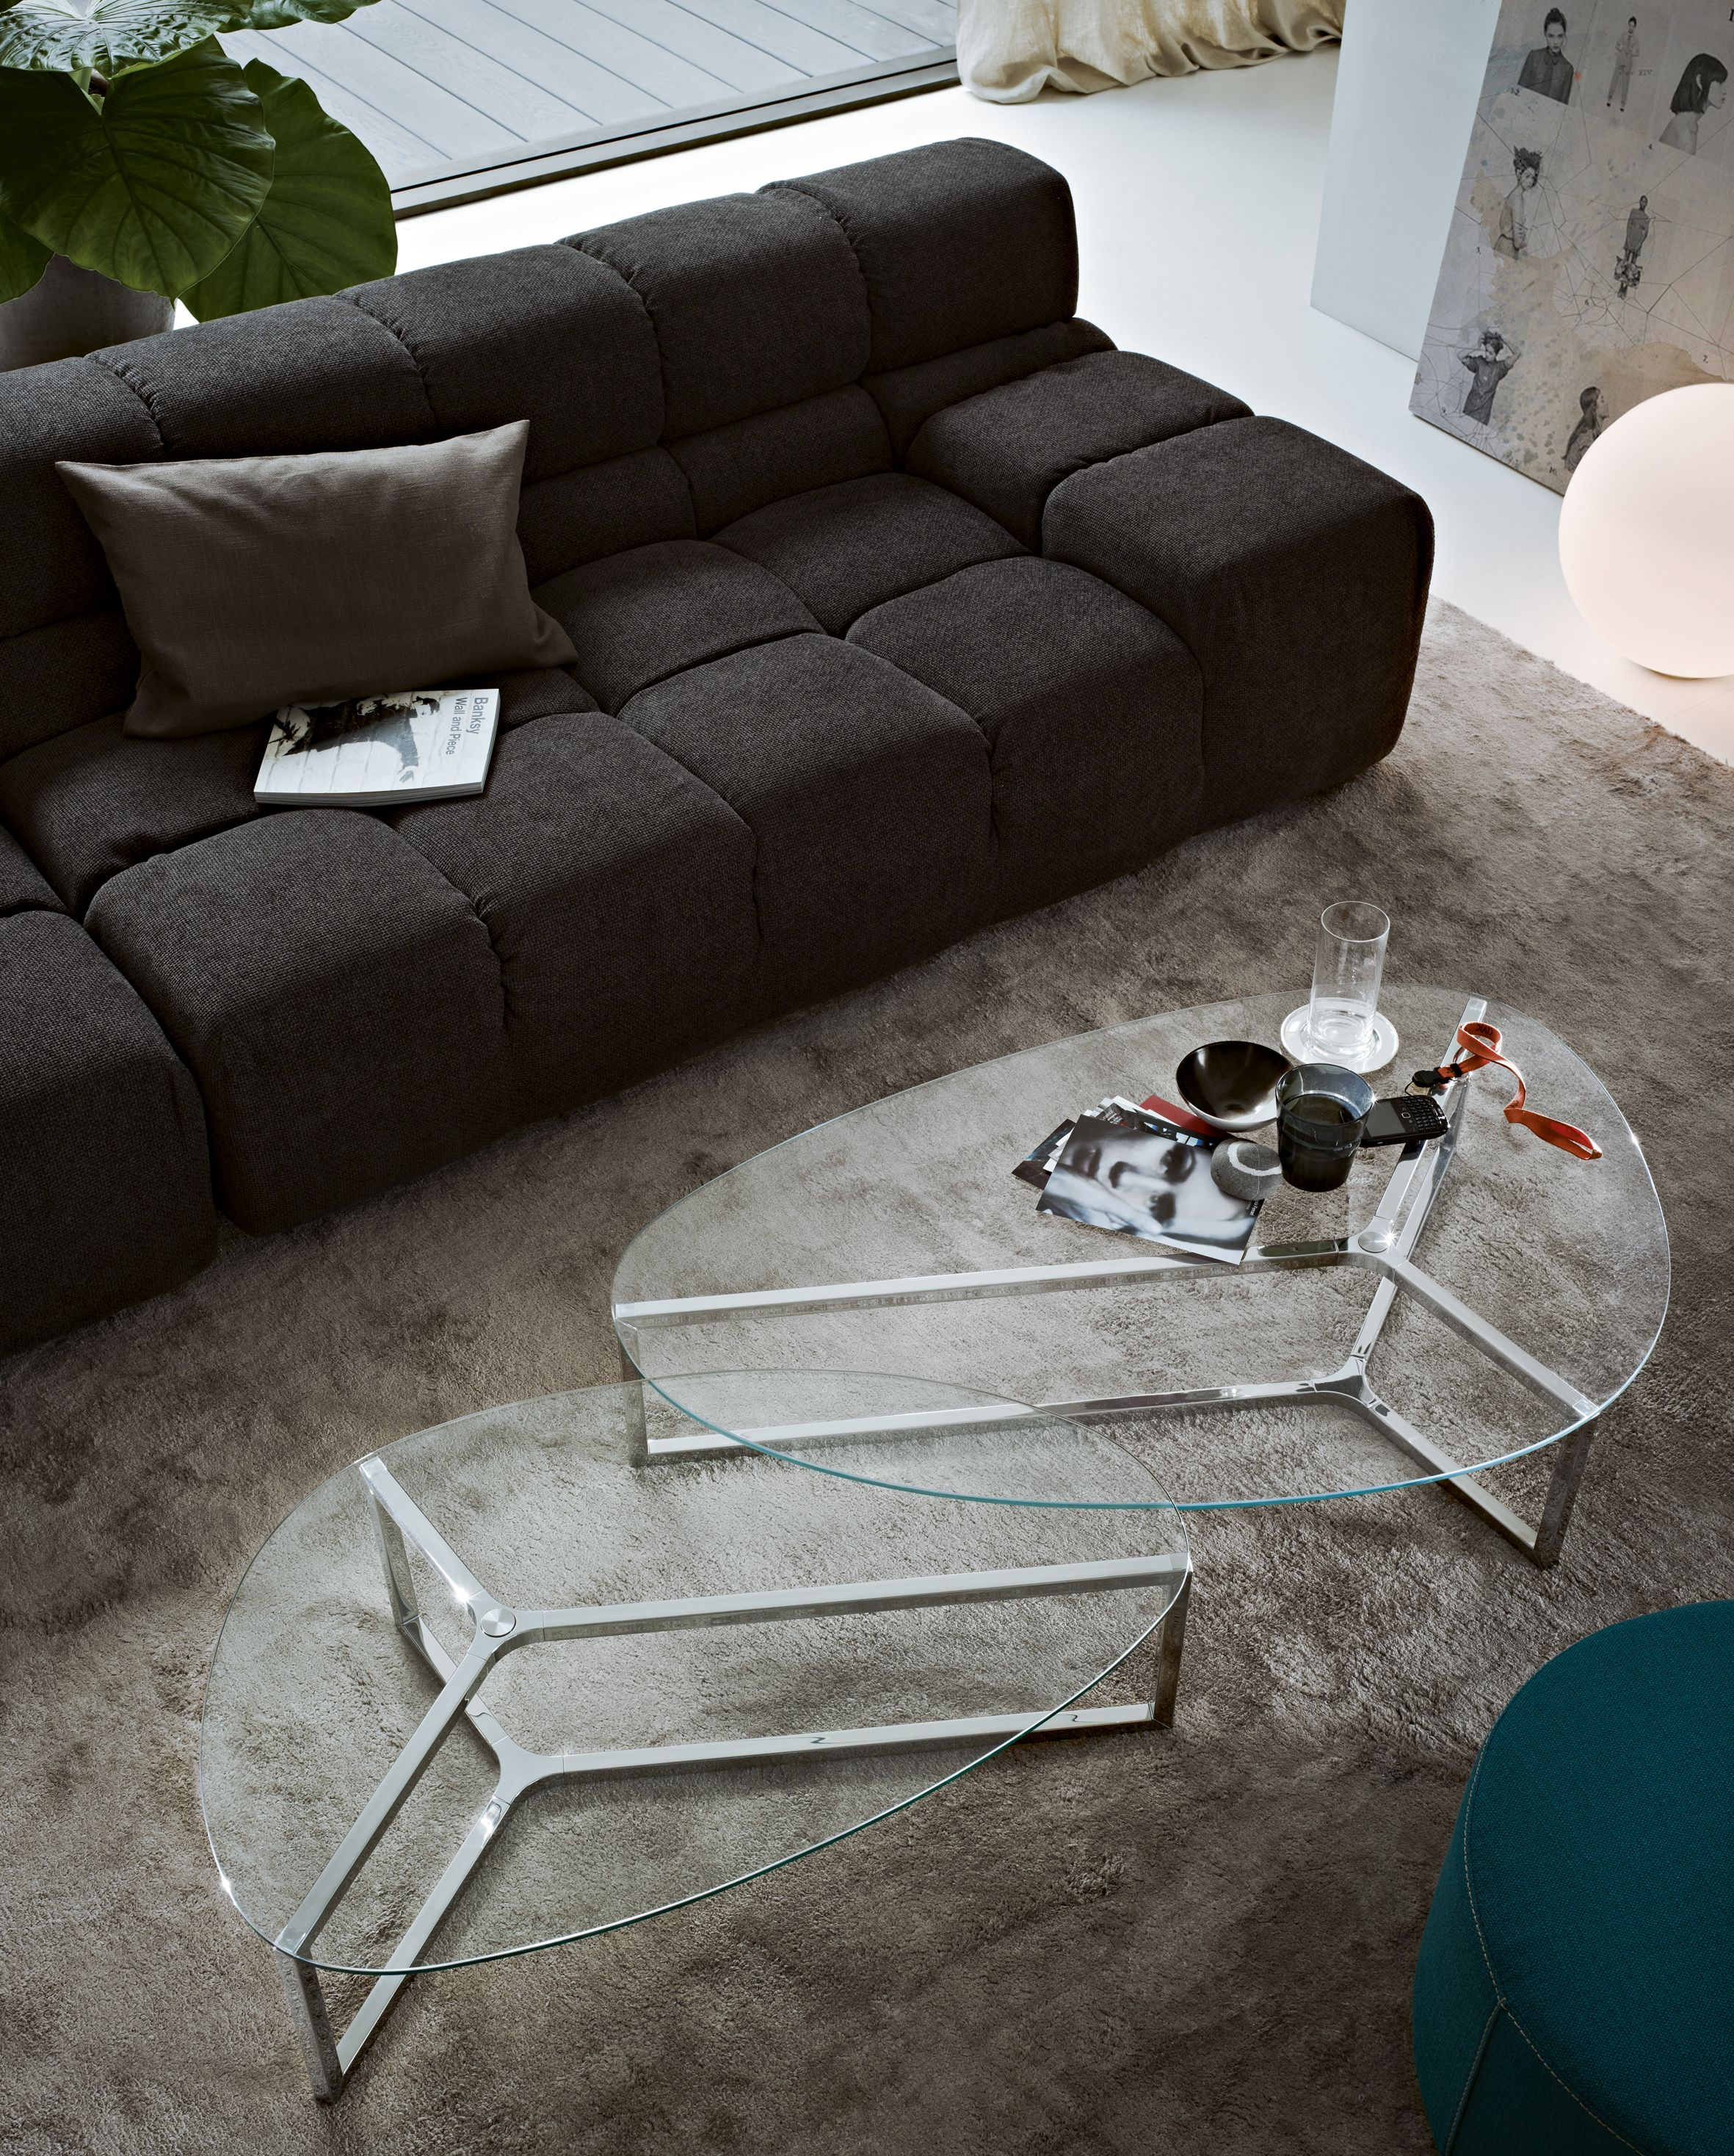 Raj 3 By Gallotti Radice Coffee Table With 8 Mm Transparent Glass Top Painted Glass As Per Samples In T Oval Coffee Tables Coffee Table Glass Coffee Table [ 2936 x 2362 Pixel ]